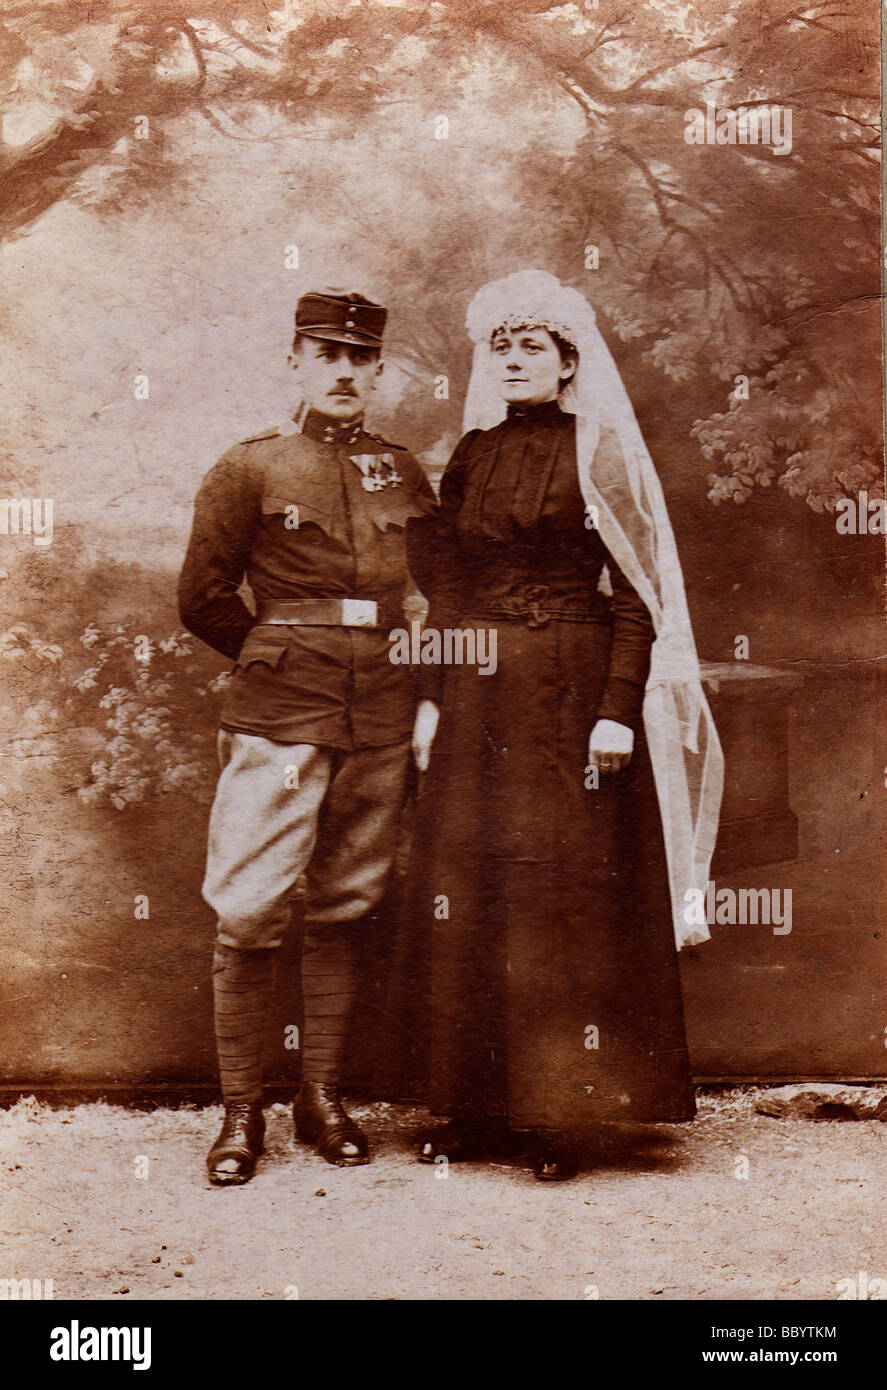 Soldier with his wife, historical photograph, circa 1900 - Stock Image